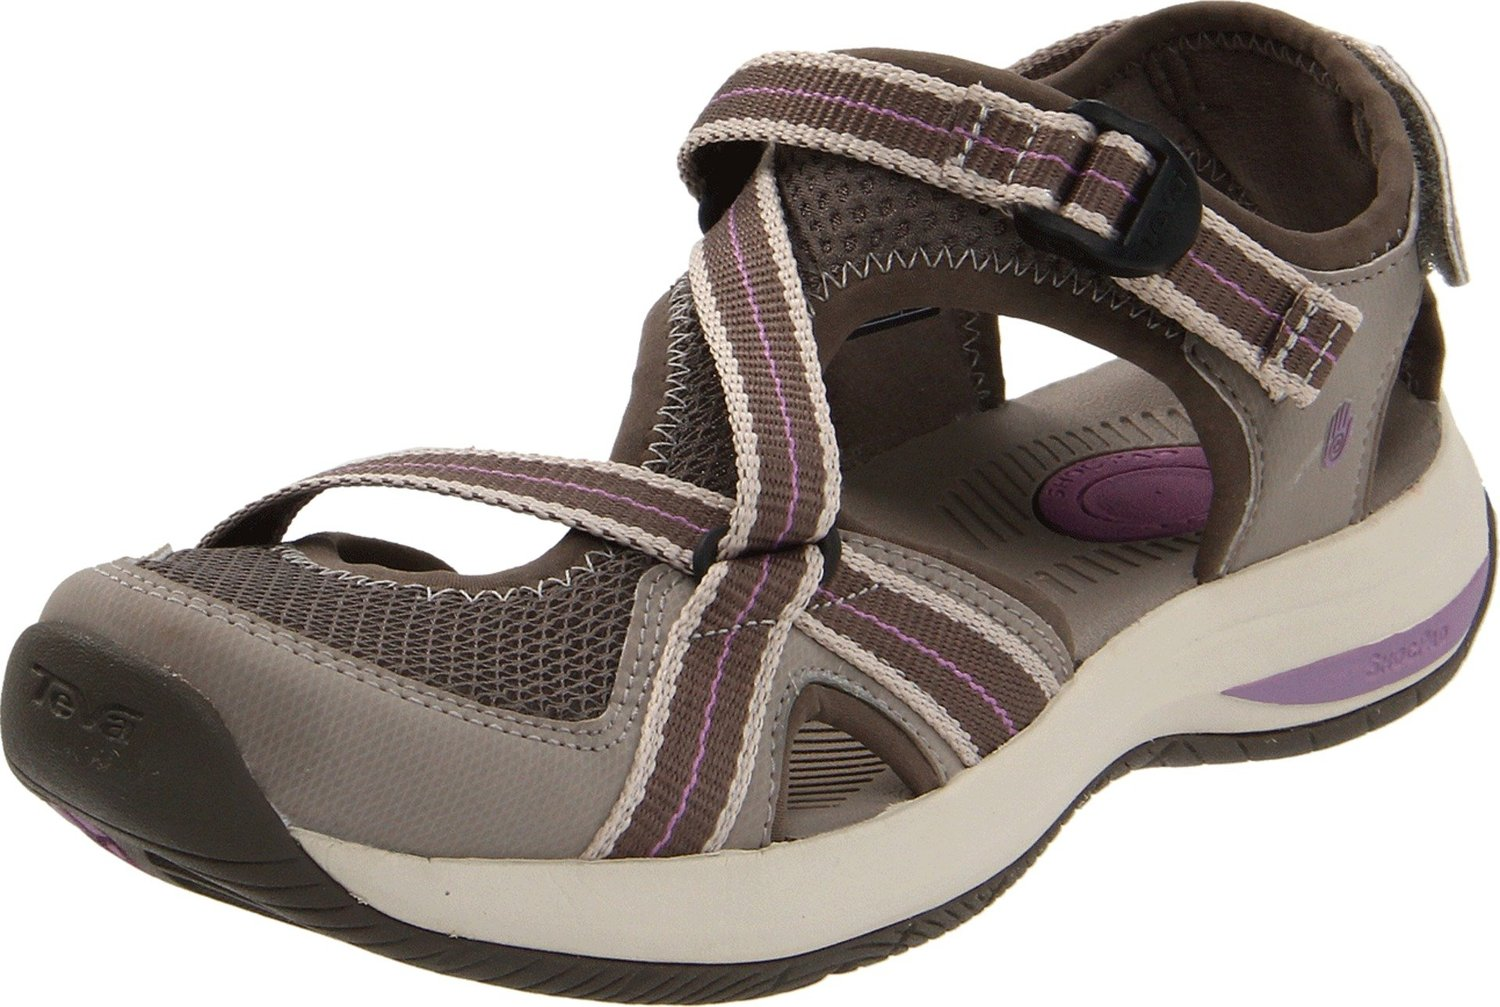 Find great deals on eBay for teva sandals. Shop with confidence.